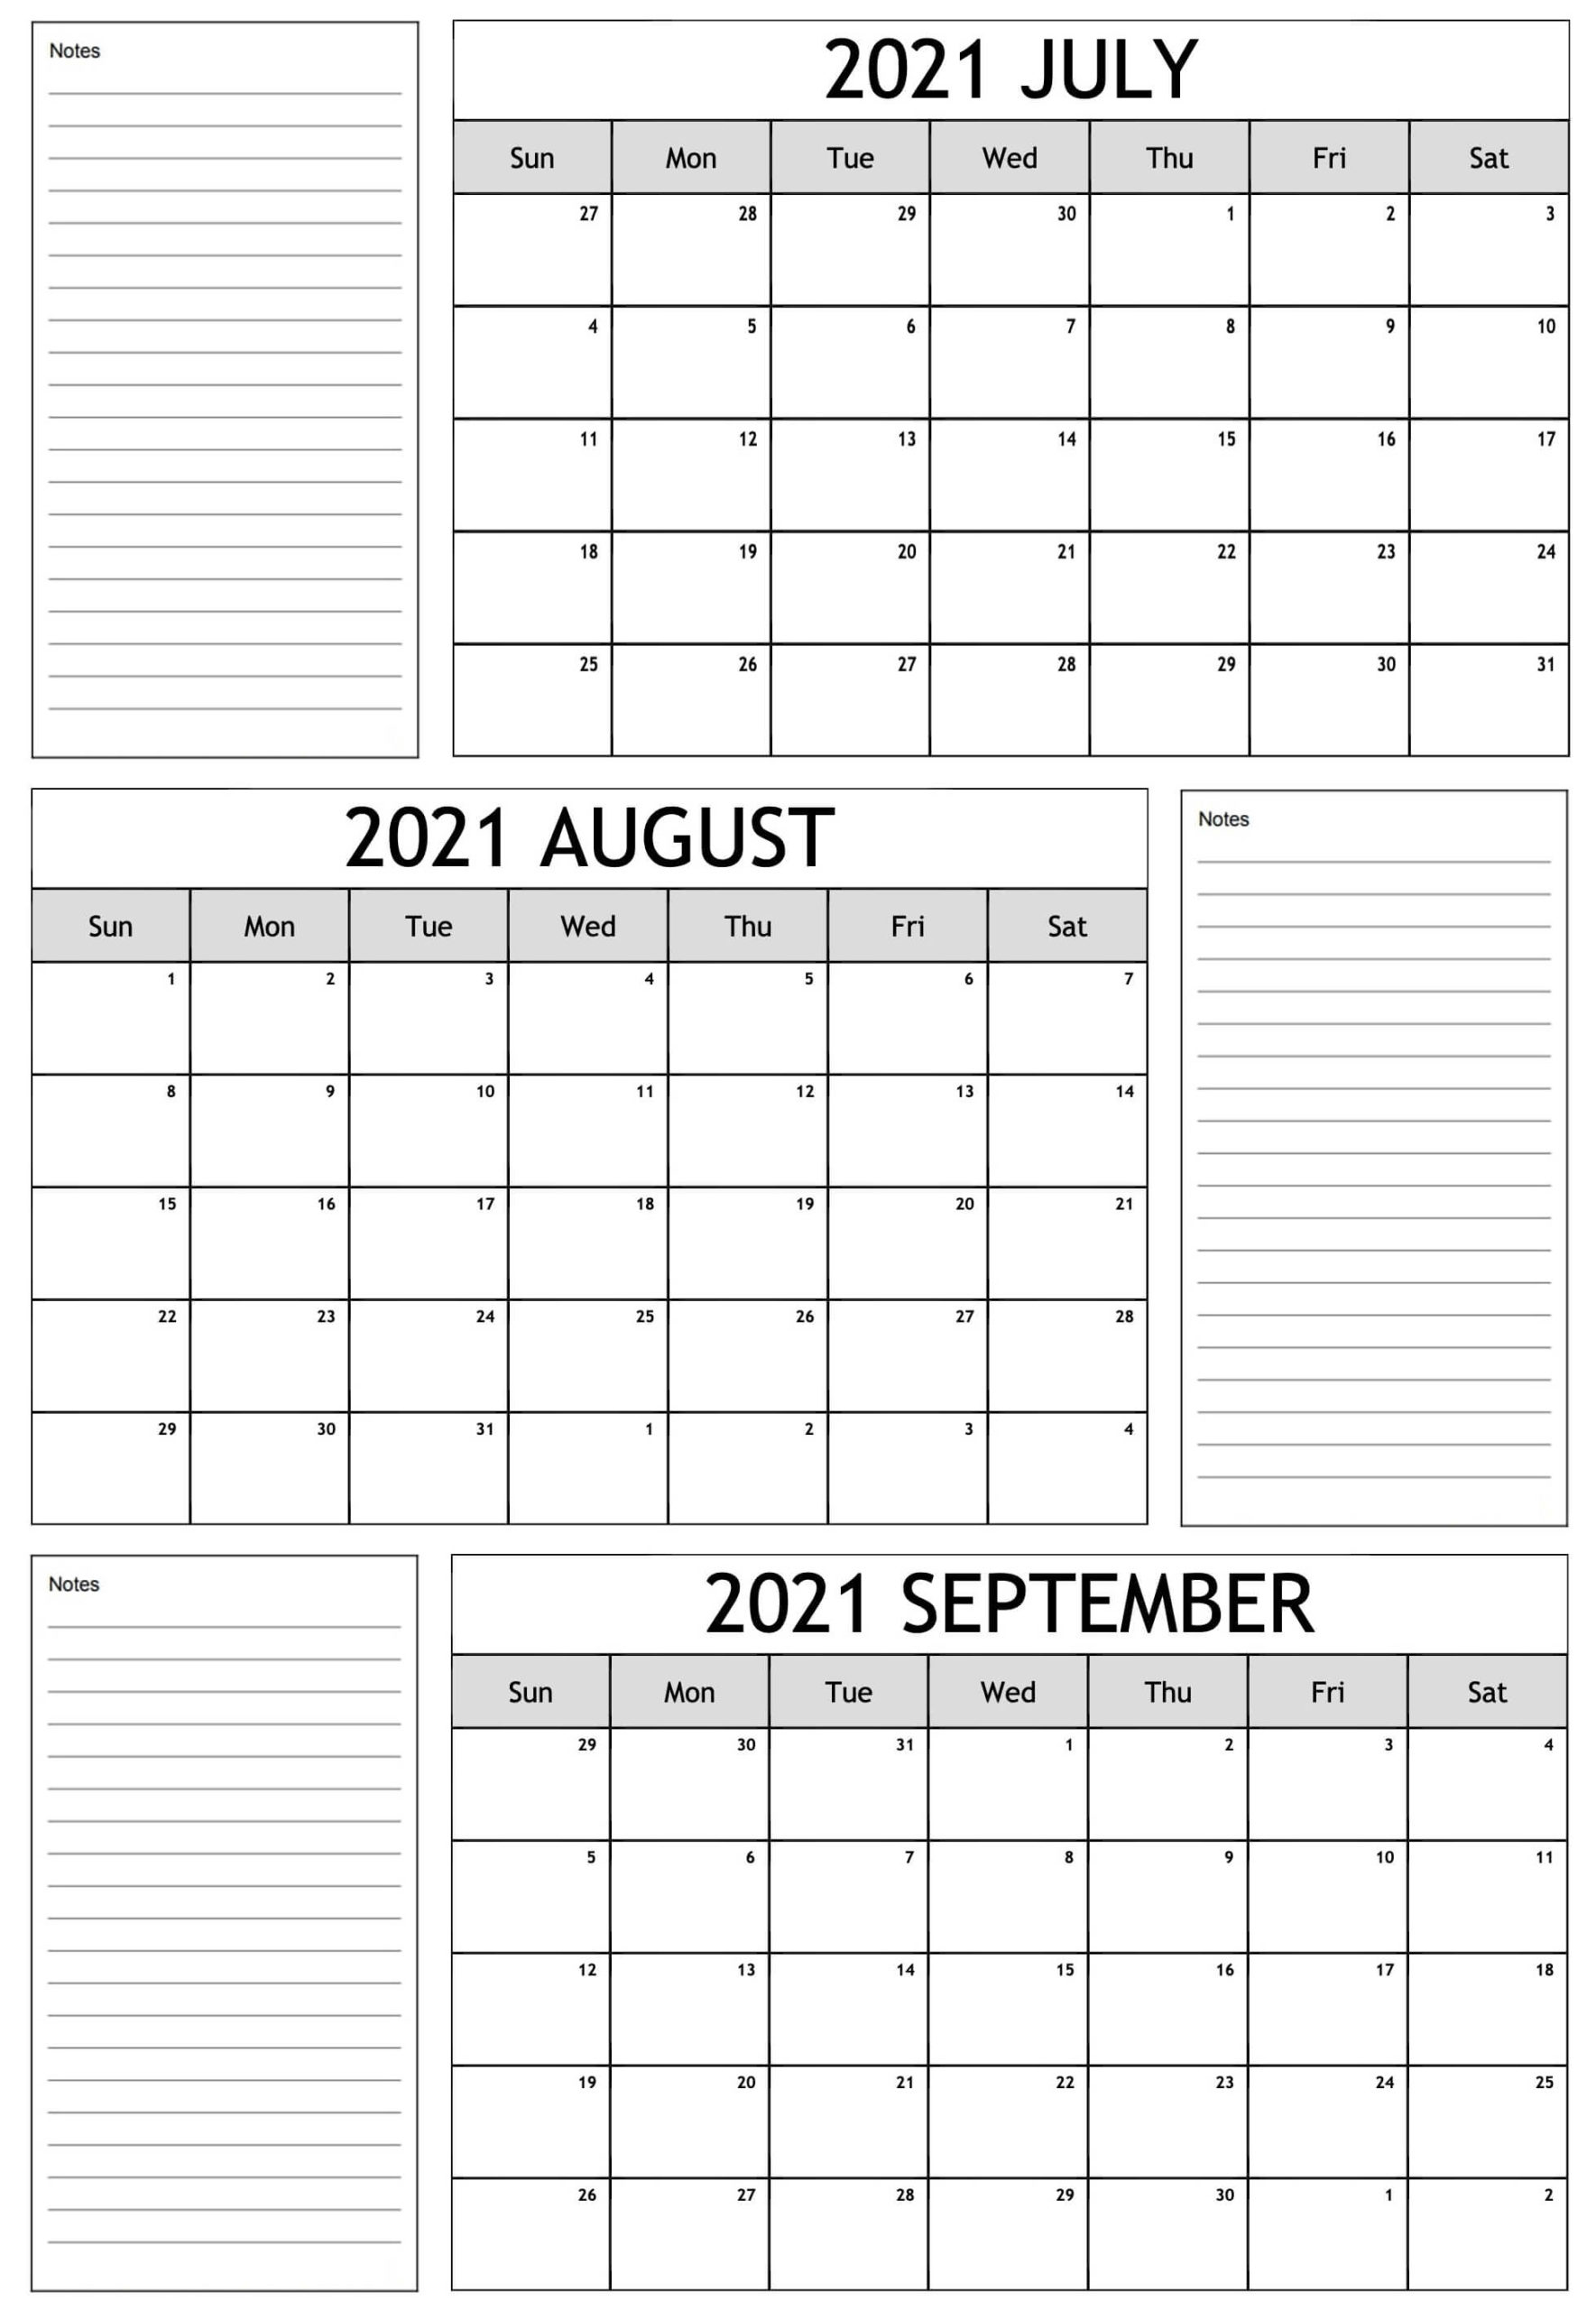 Quarterly Calendar From July 2021